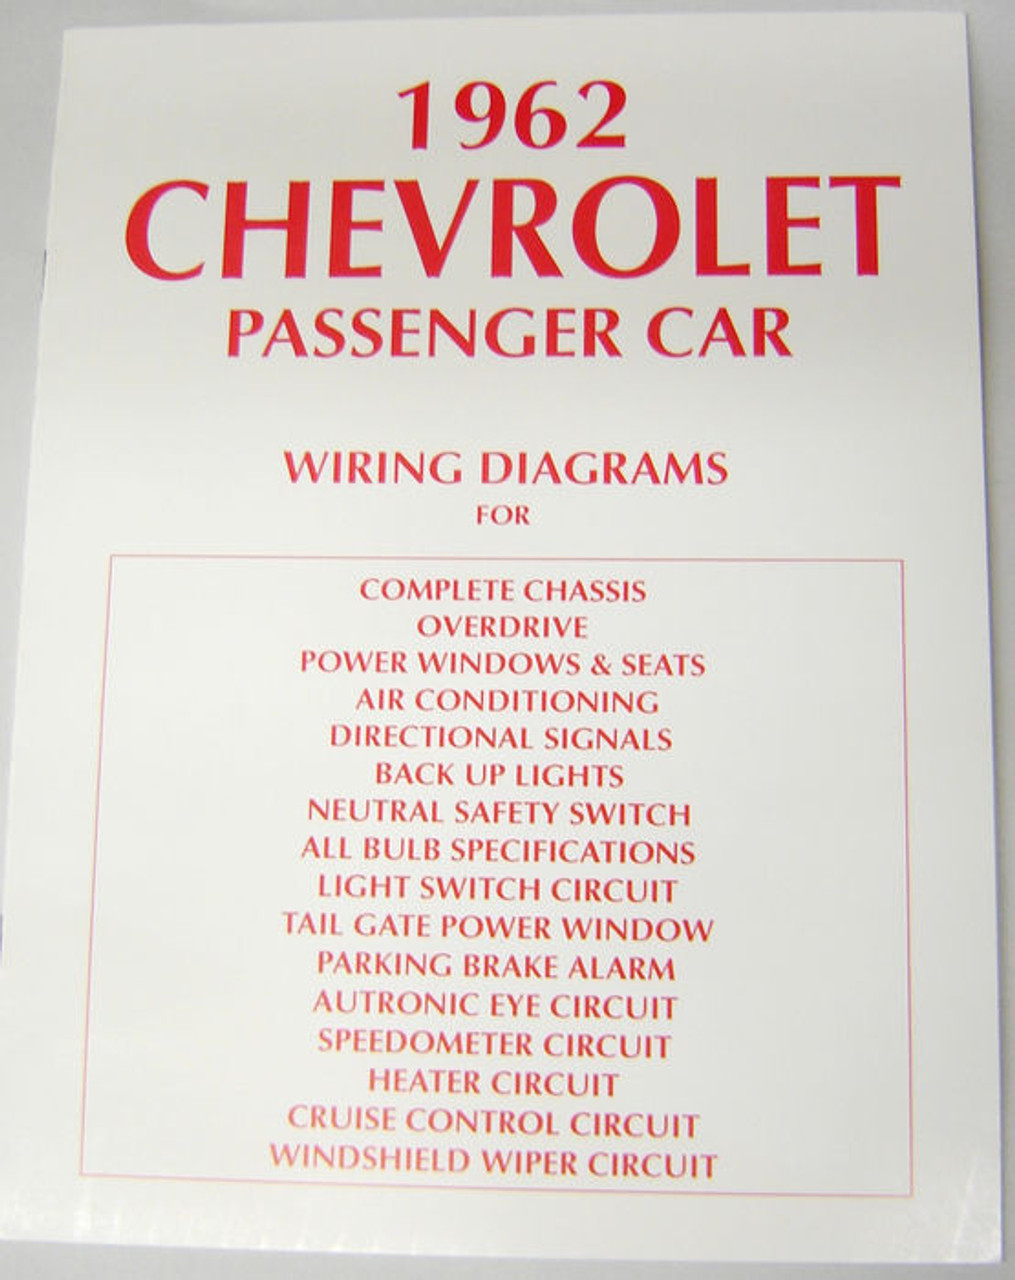 62 Chevy Impala Electrical Wiring Diagram Manual 1962 - I-5 Classic ...